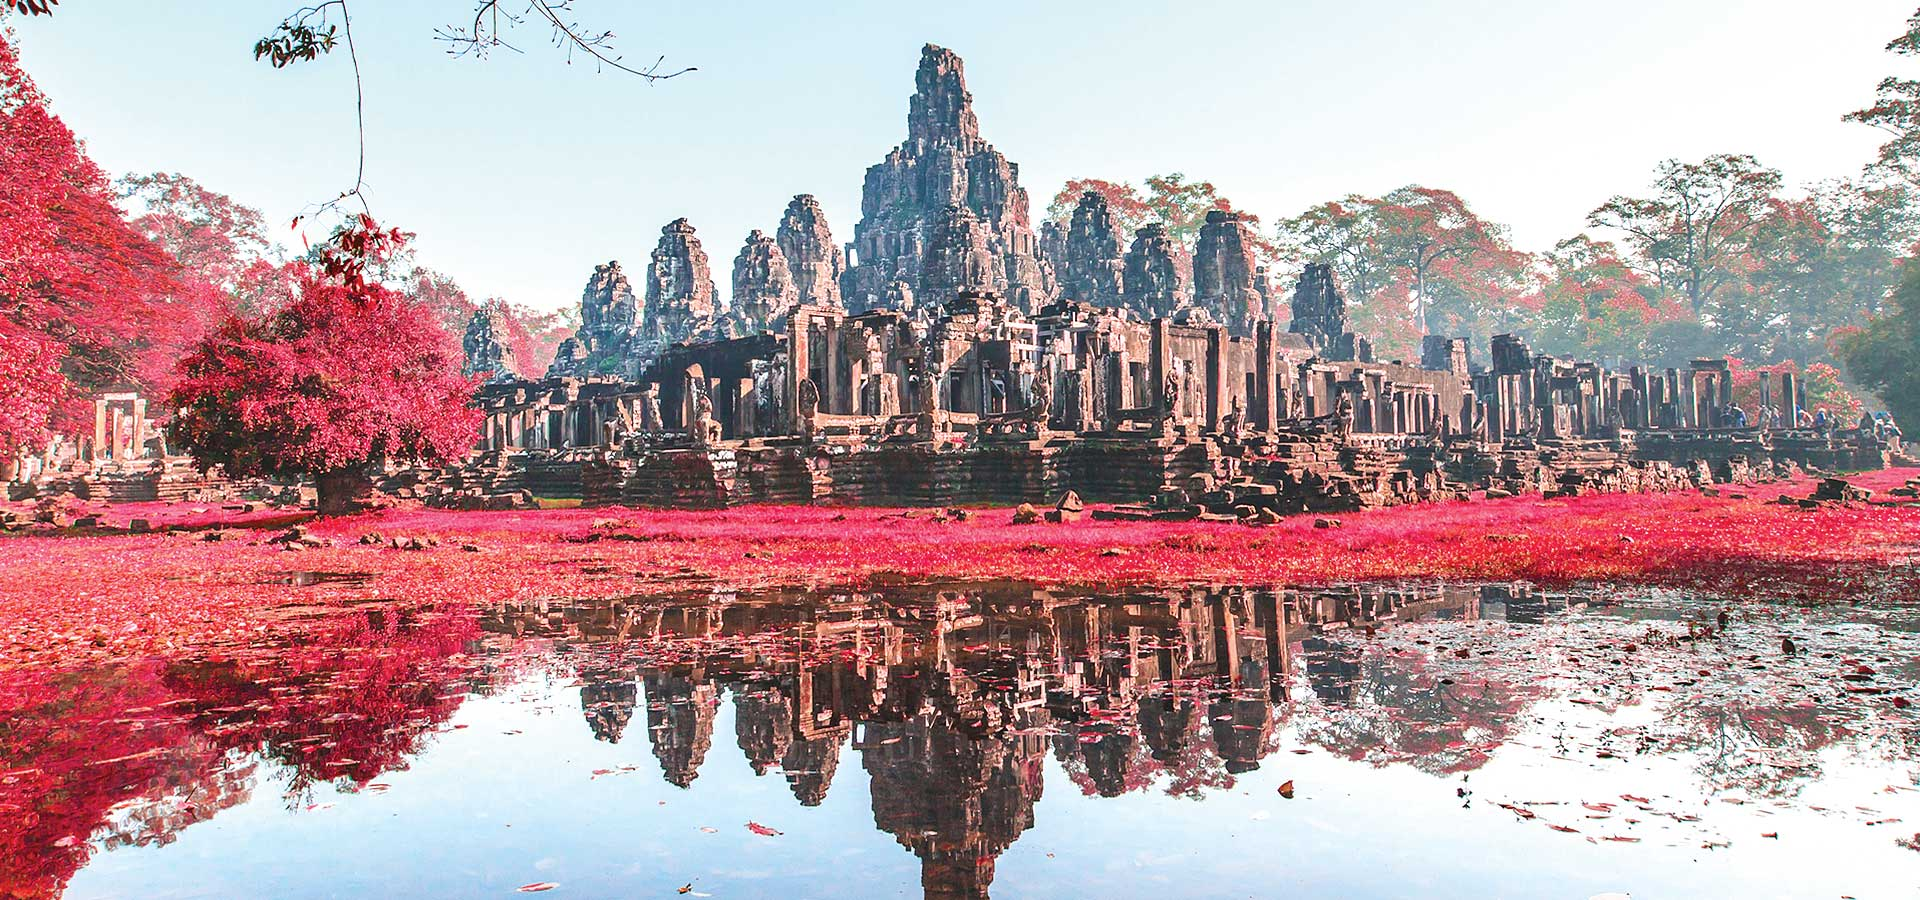 Explore the Bayon is a richly decorated Khmer temple at Angkor in Cambodia